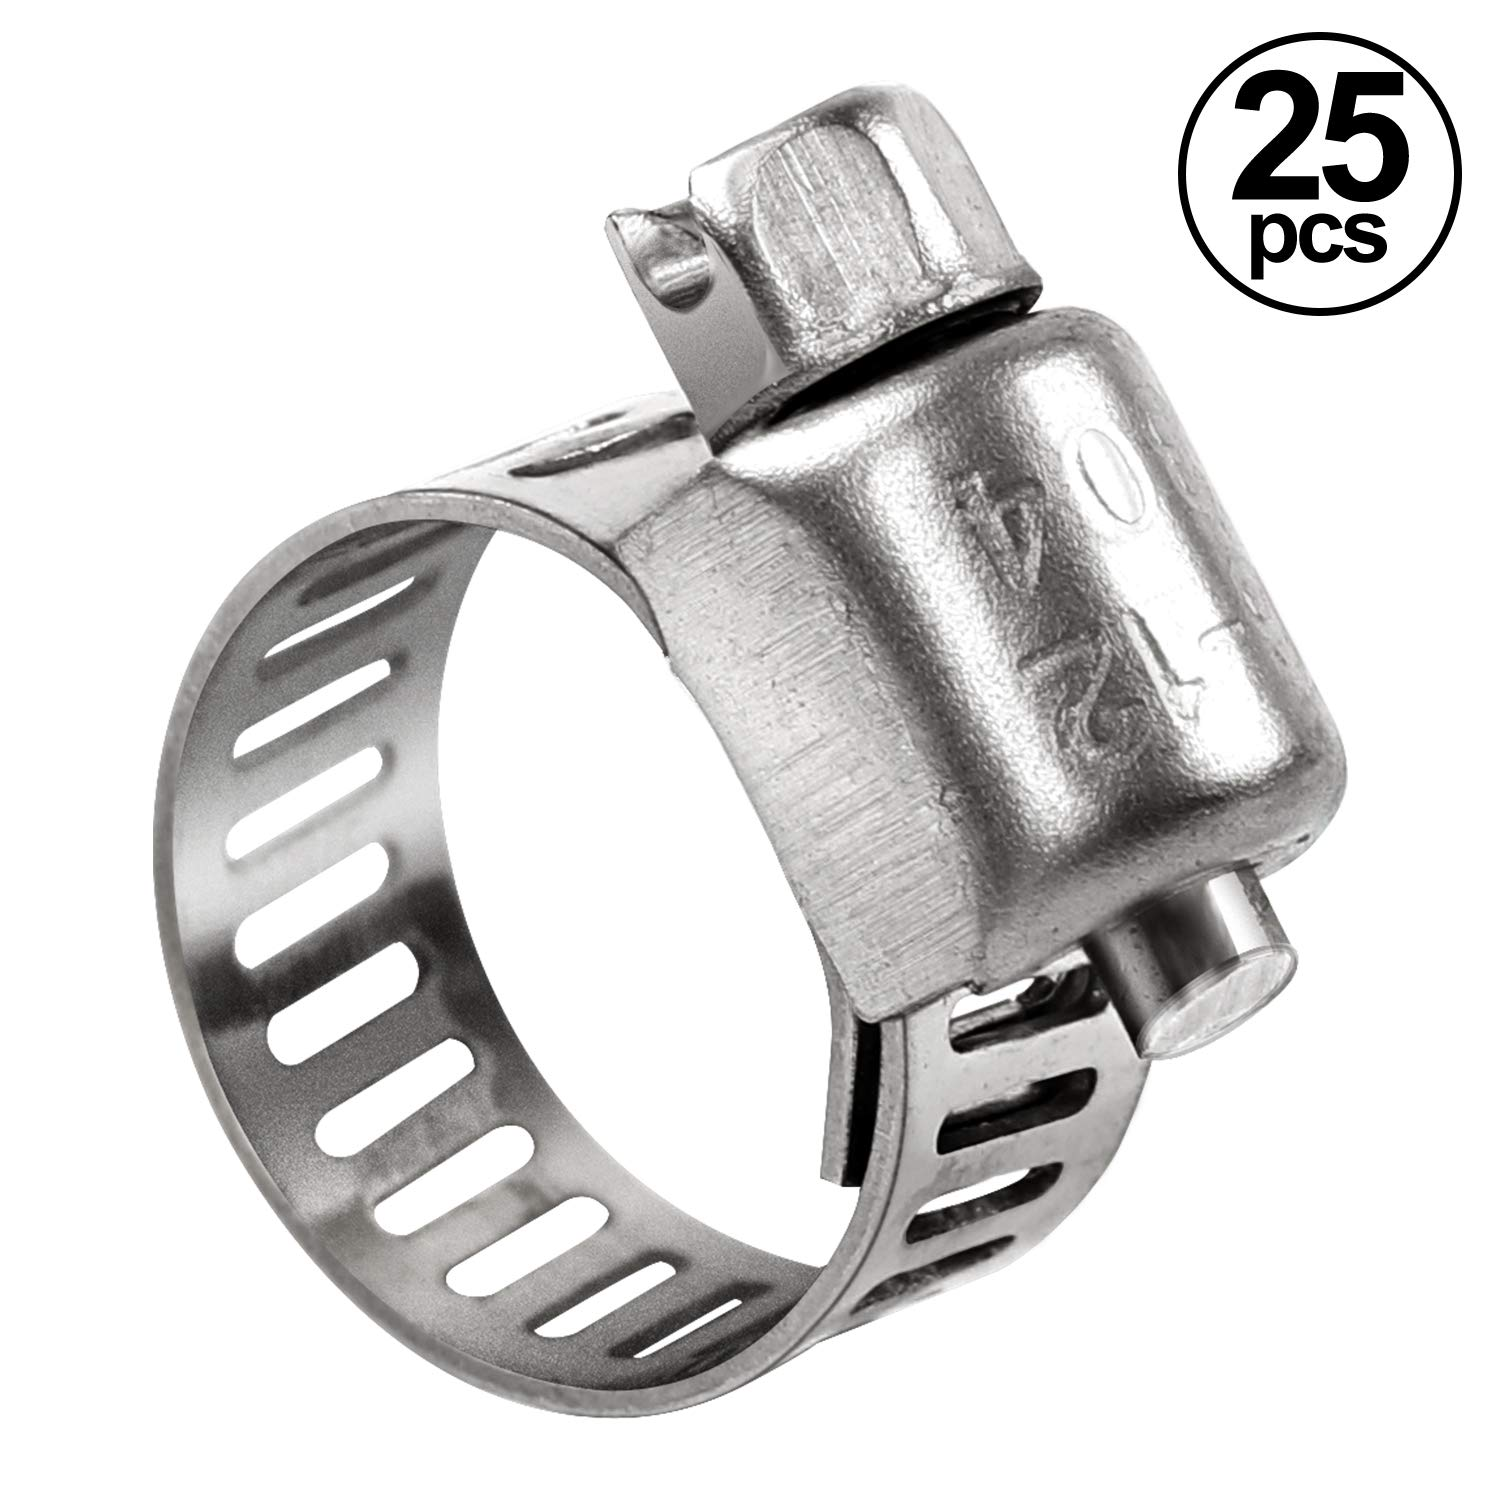 HongWay Hose Clamp, 25 Packs Adjustable 6-12mm (1/4-7/16 inch) Size Range, 304 Stainless Steel Worm Gear Hose Clamp, Suitable for 3/8in Plumbing, Automotive and Mechanical Application